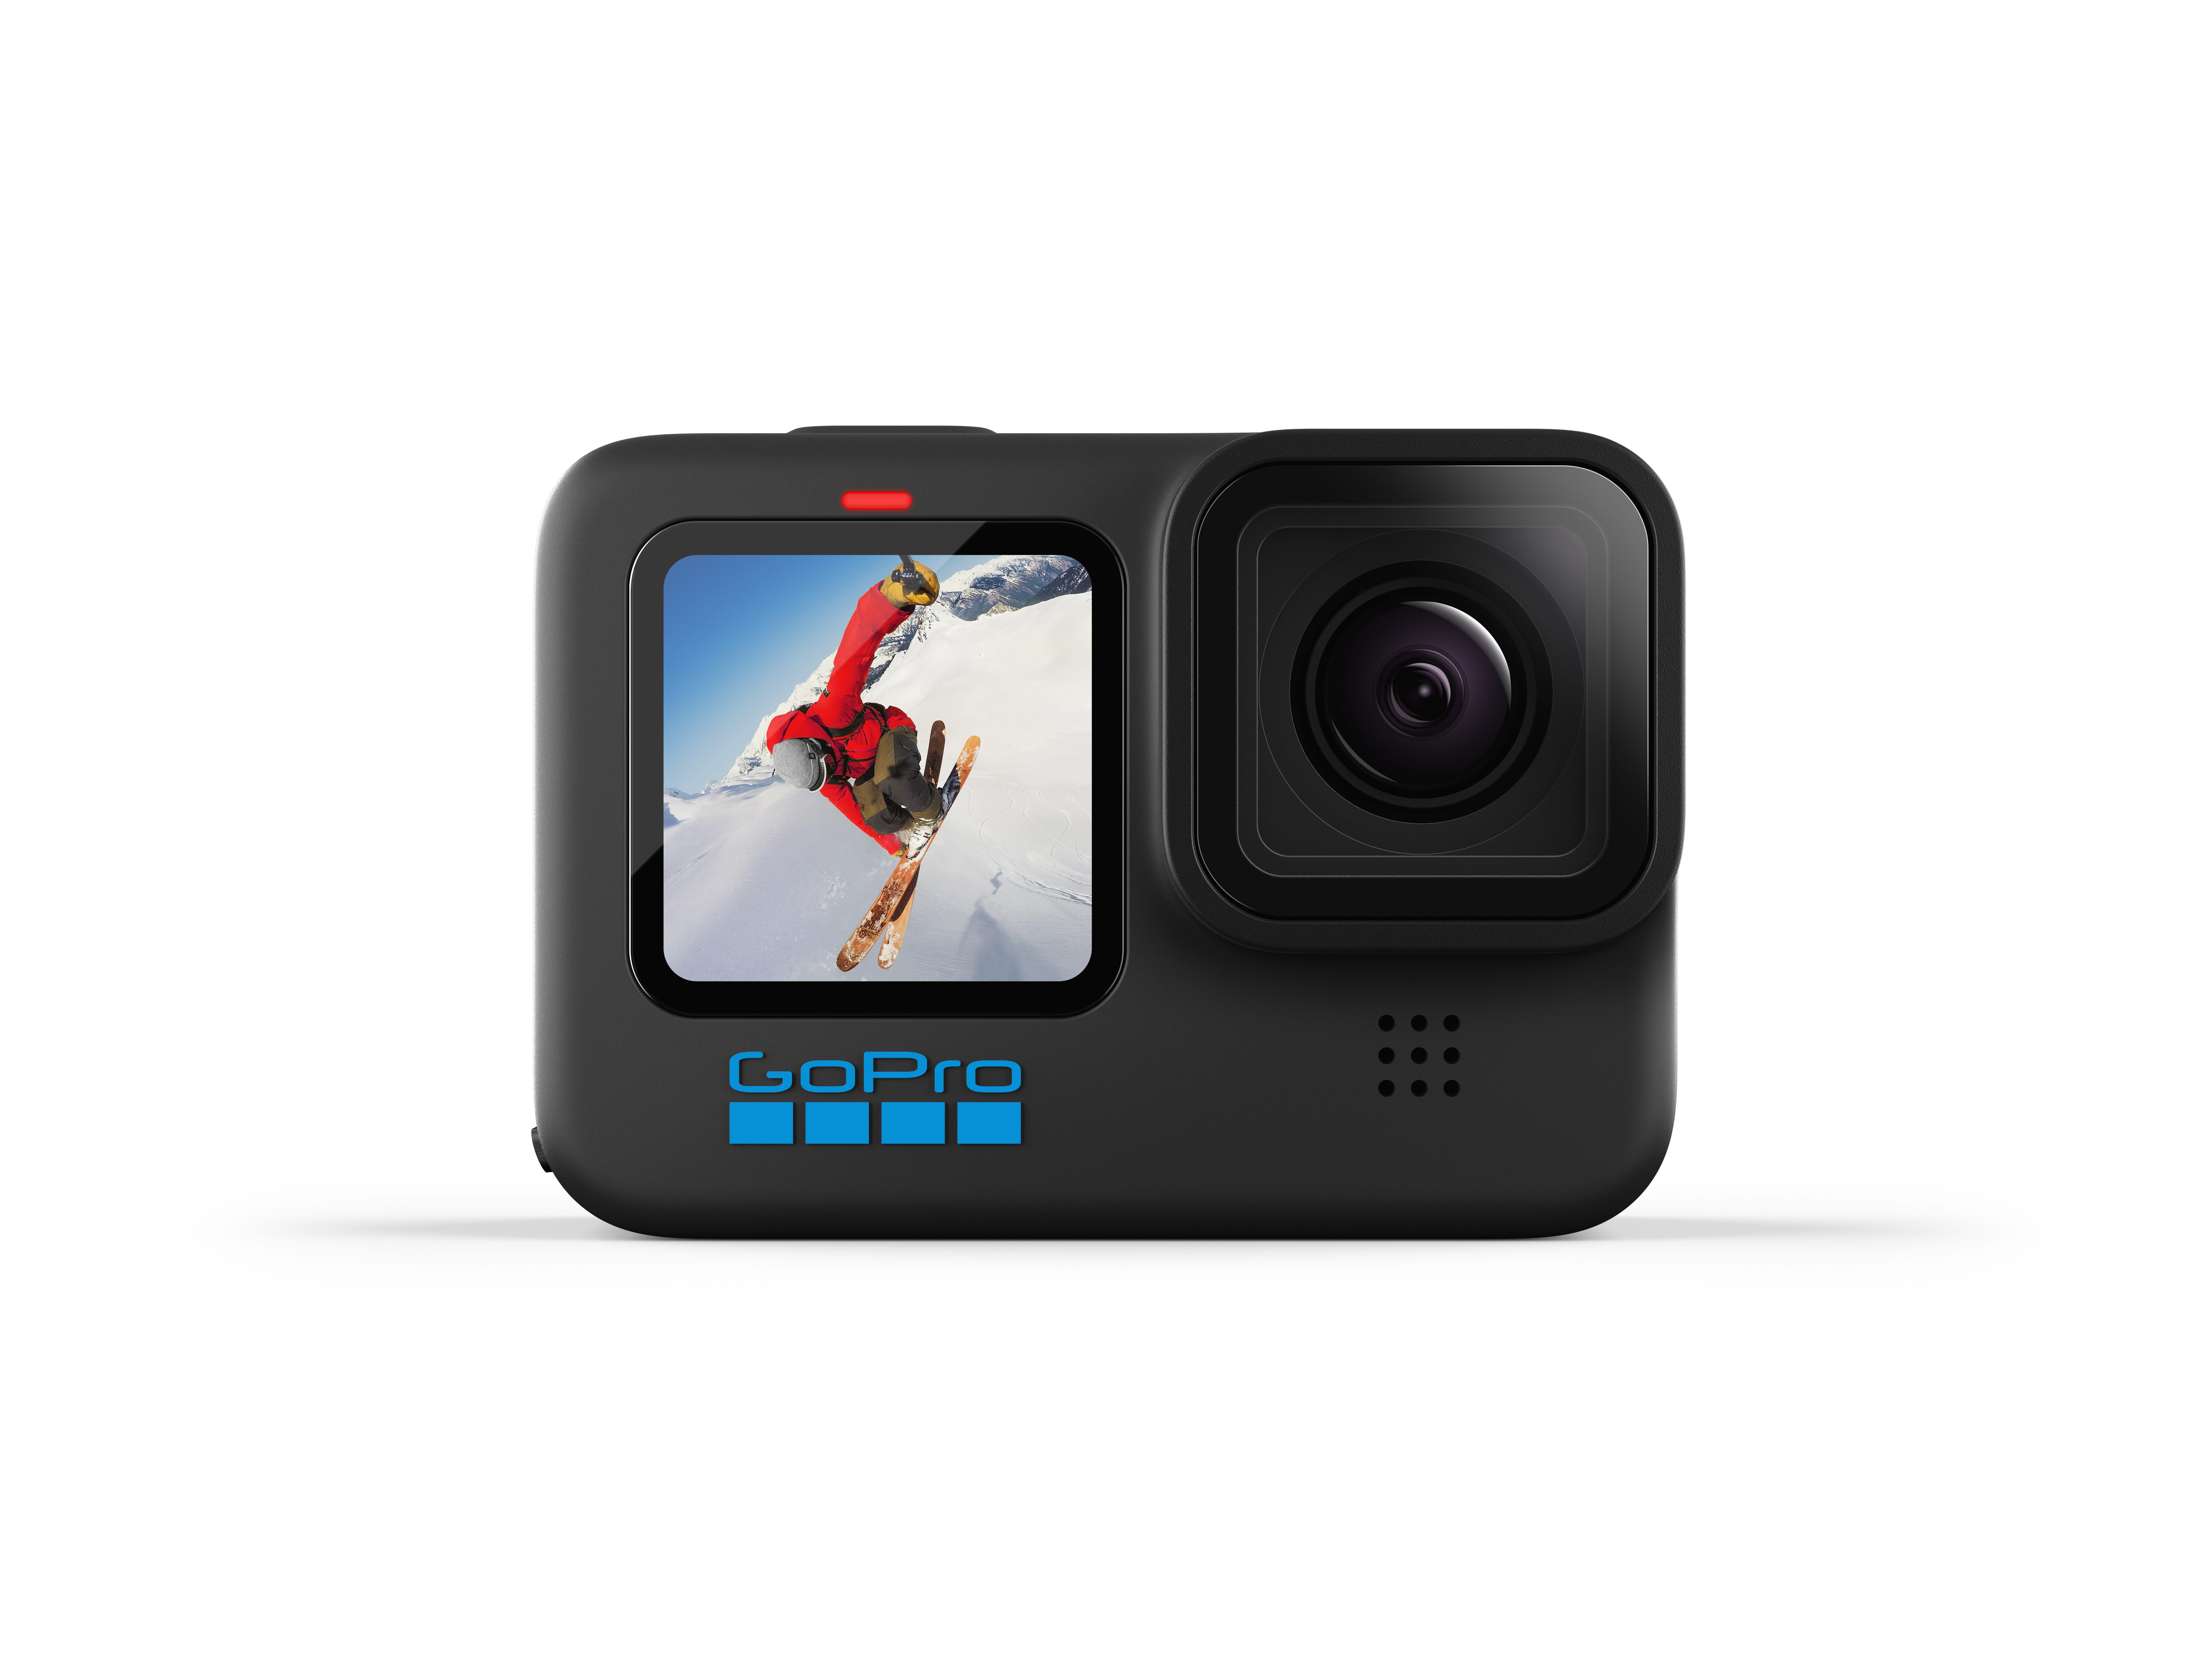 Don't try this with your new iPhone: 6 hot tips to shooting with 'action cams'